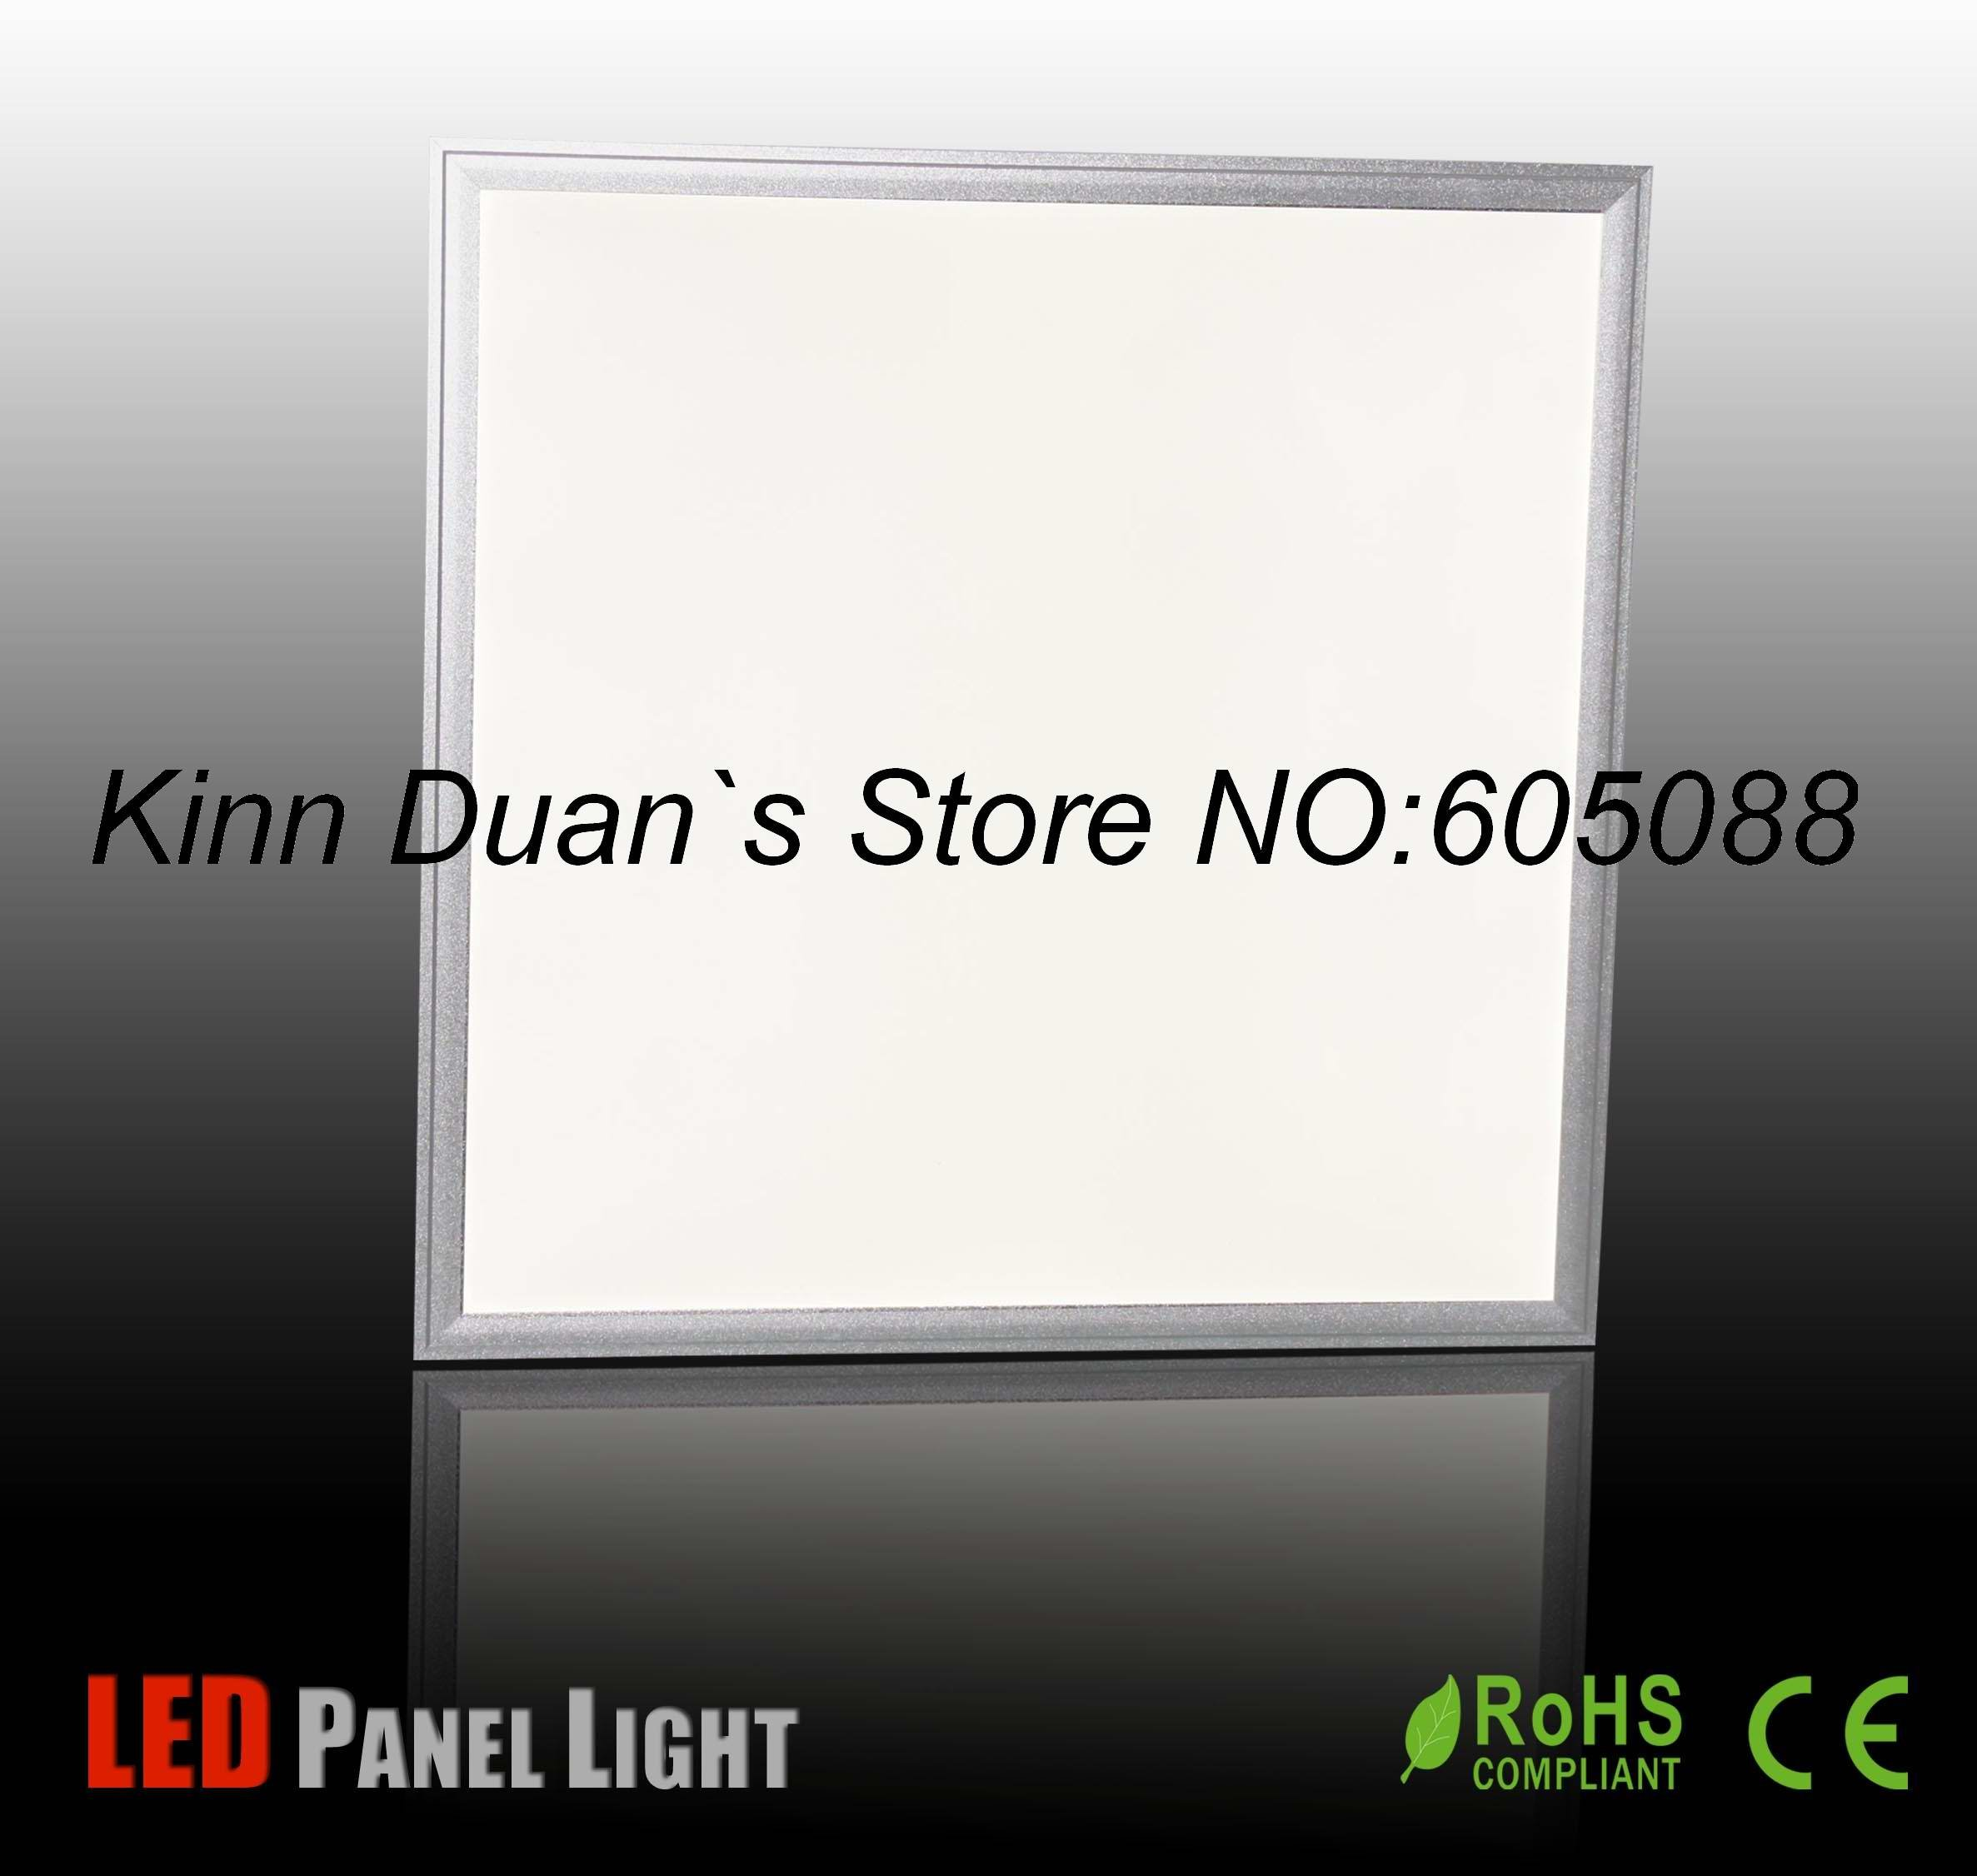 39w ceiling embeded commercial led light,led panel lighting 600x600mm,DC24v 2500lm, CE&R ...